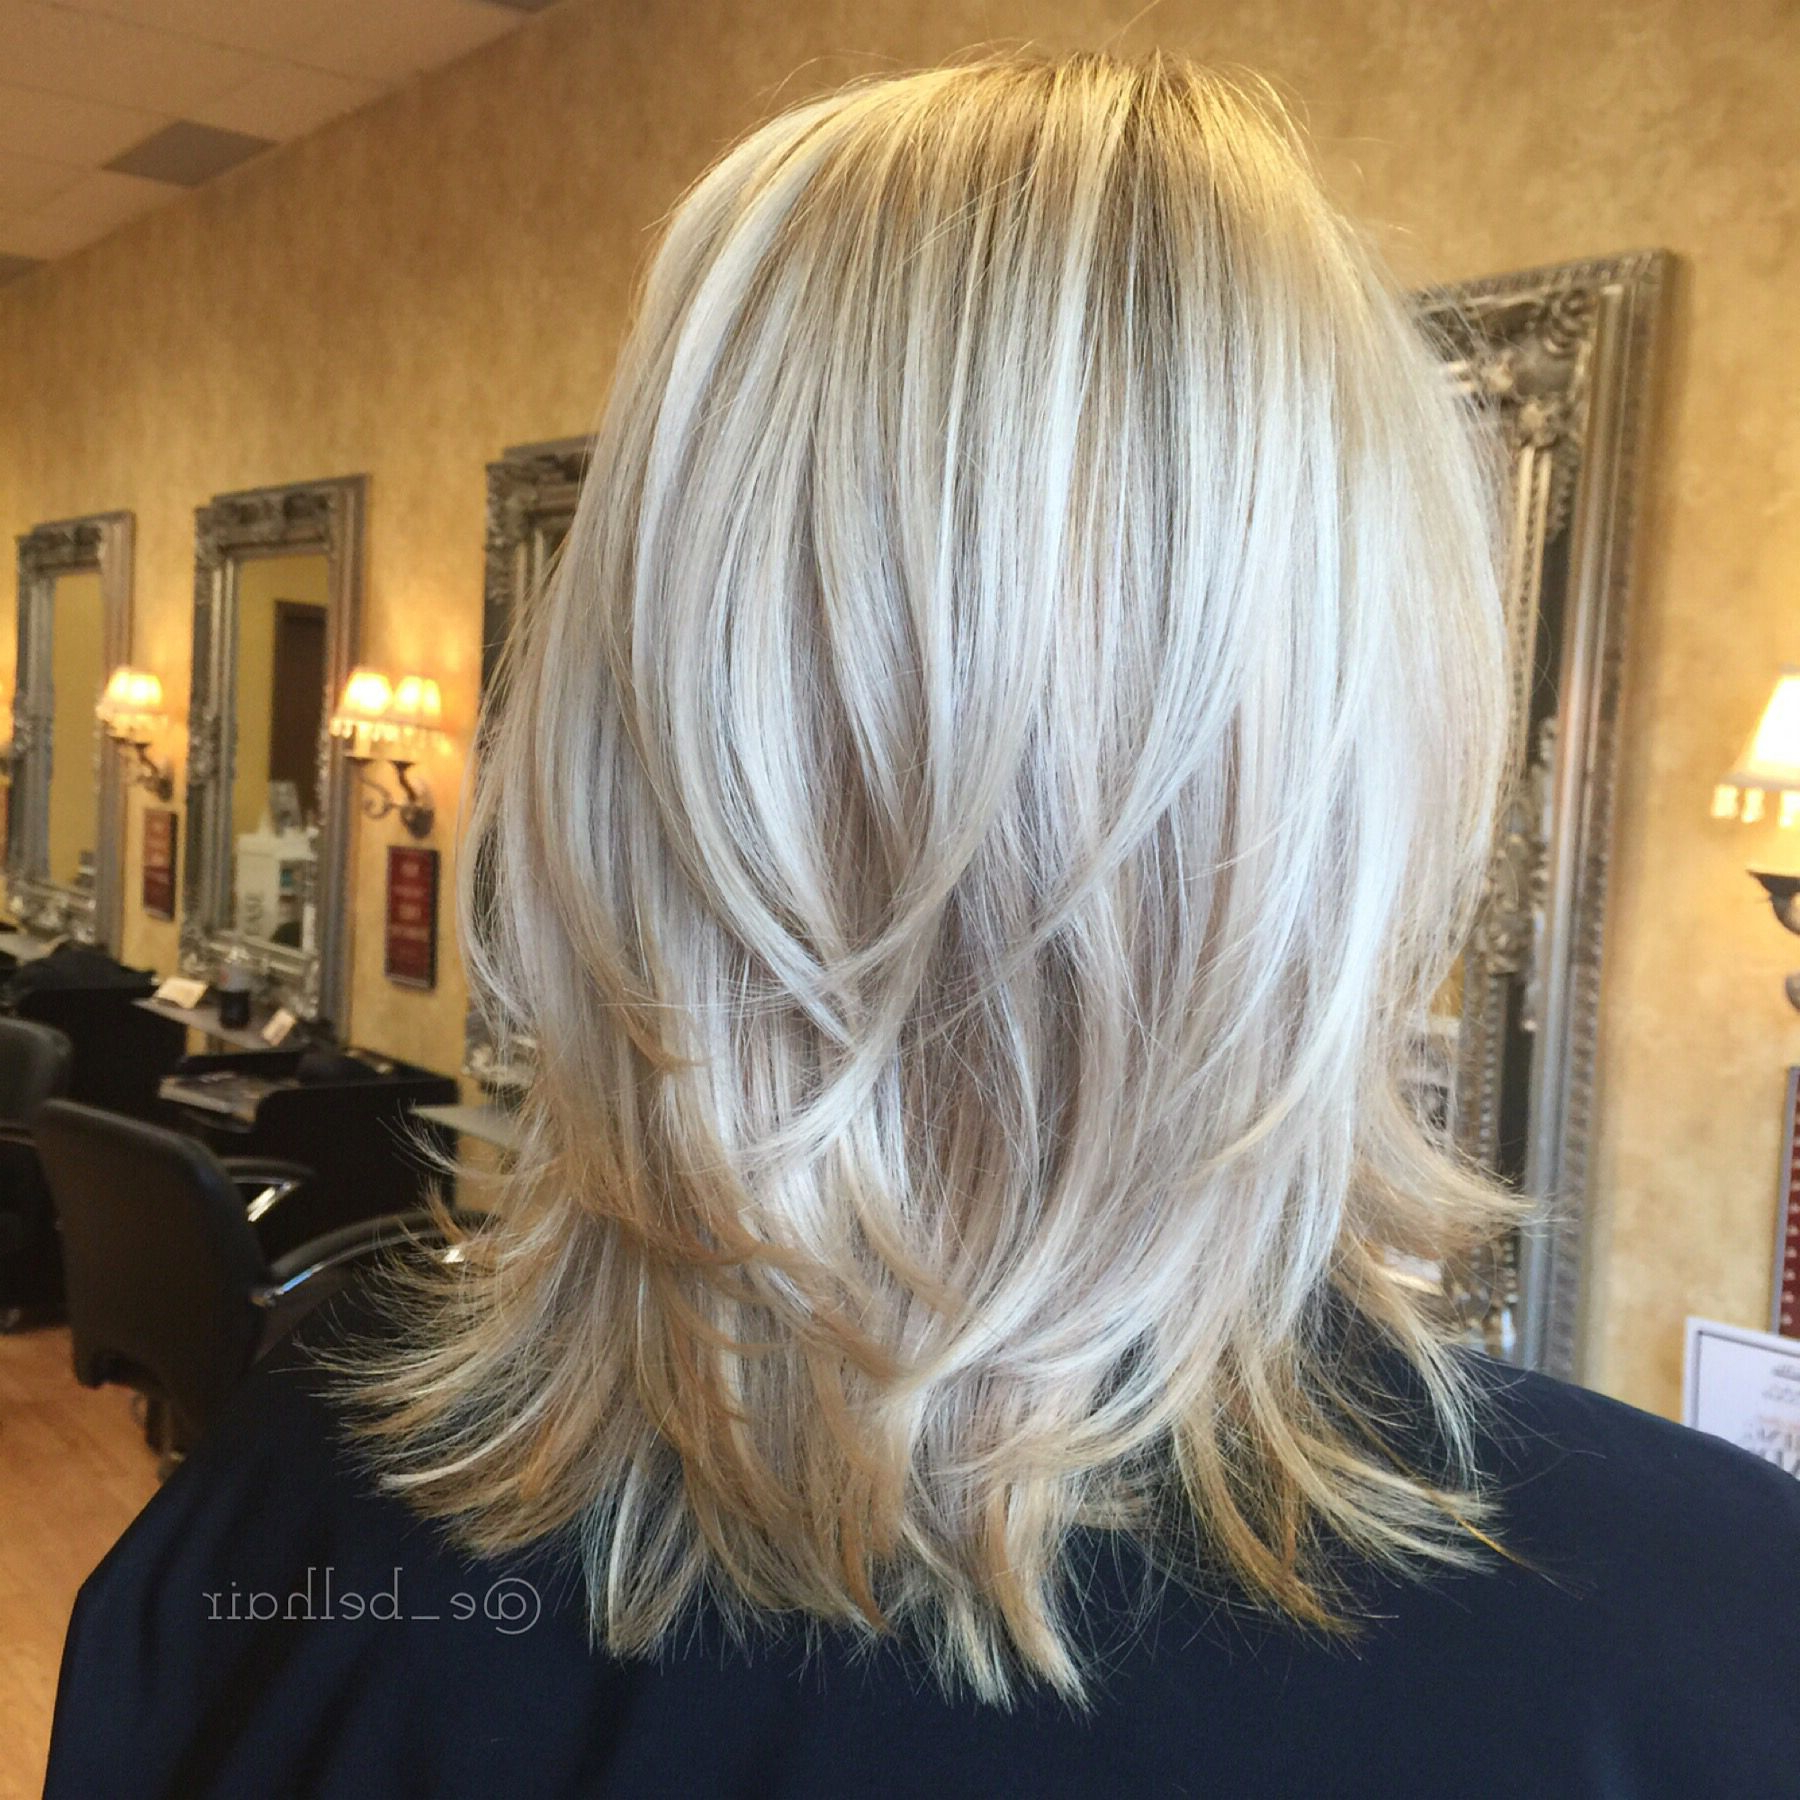 2017 Layered, Flipped, And Tousled Hairstyles Inside Shoulder Length Cut With Tousled Layers And Fresh Blonde Color (Gallery 4 of 20)